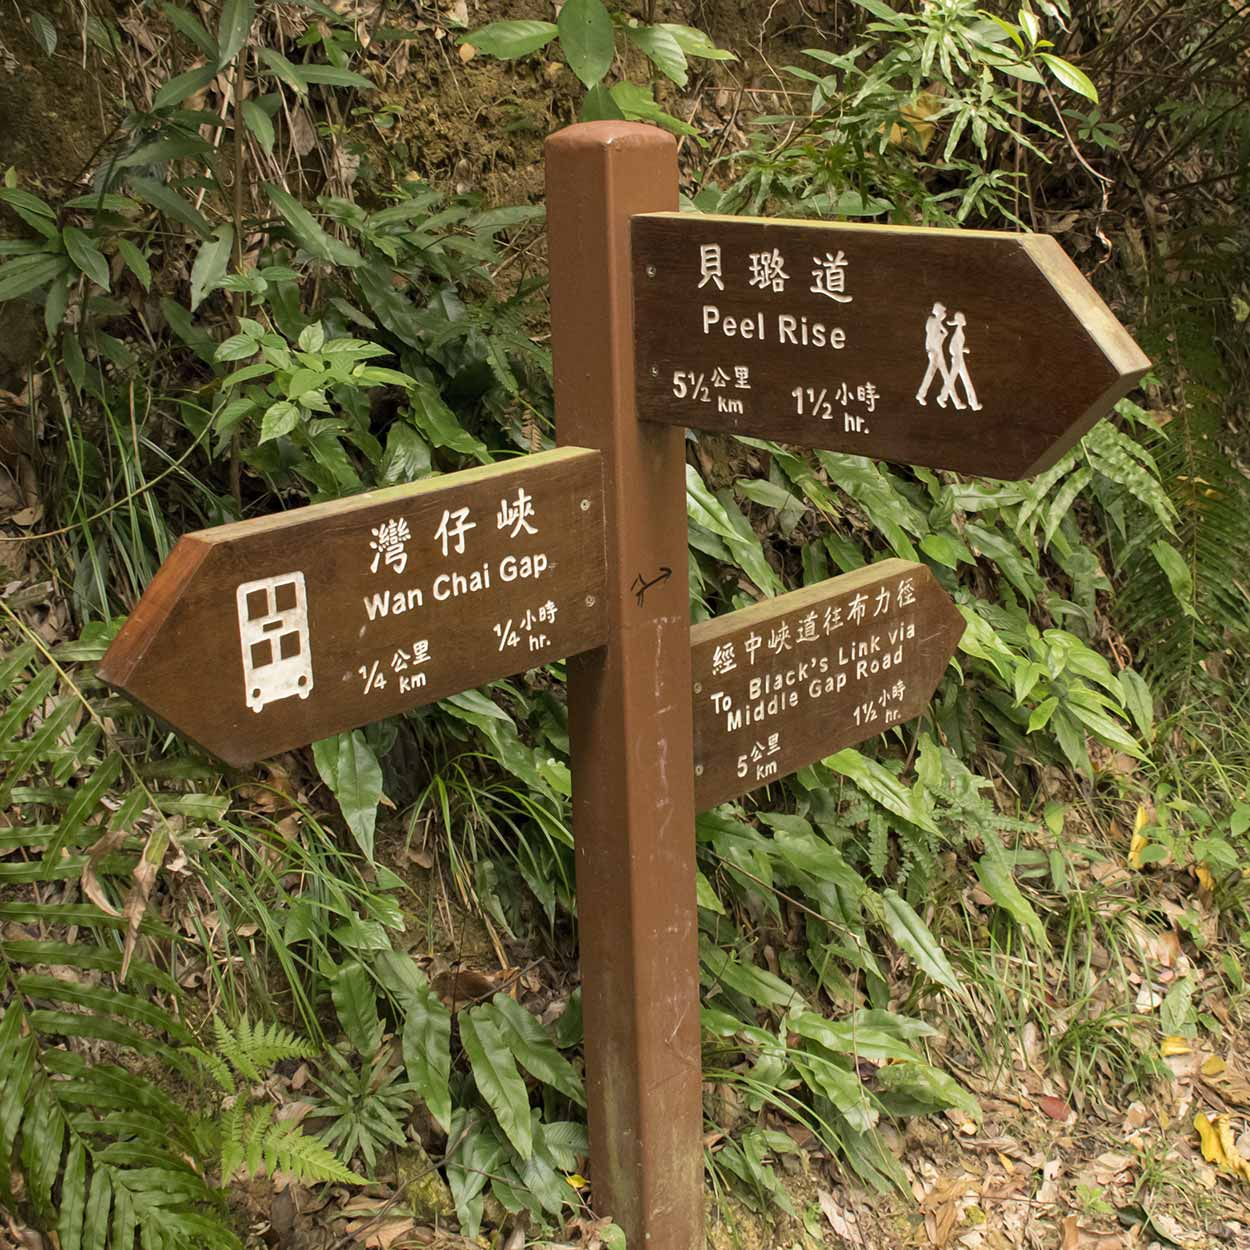 The junction of Lady Clementi's Ride and the Hong Kong Trail, Hong Kong, China